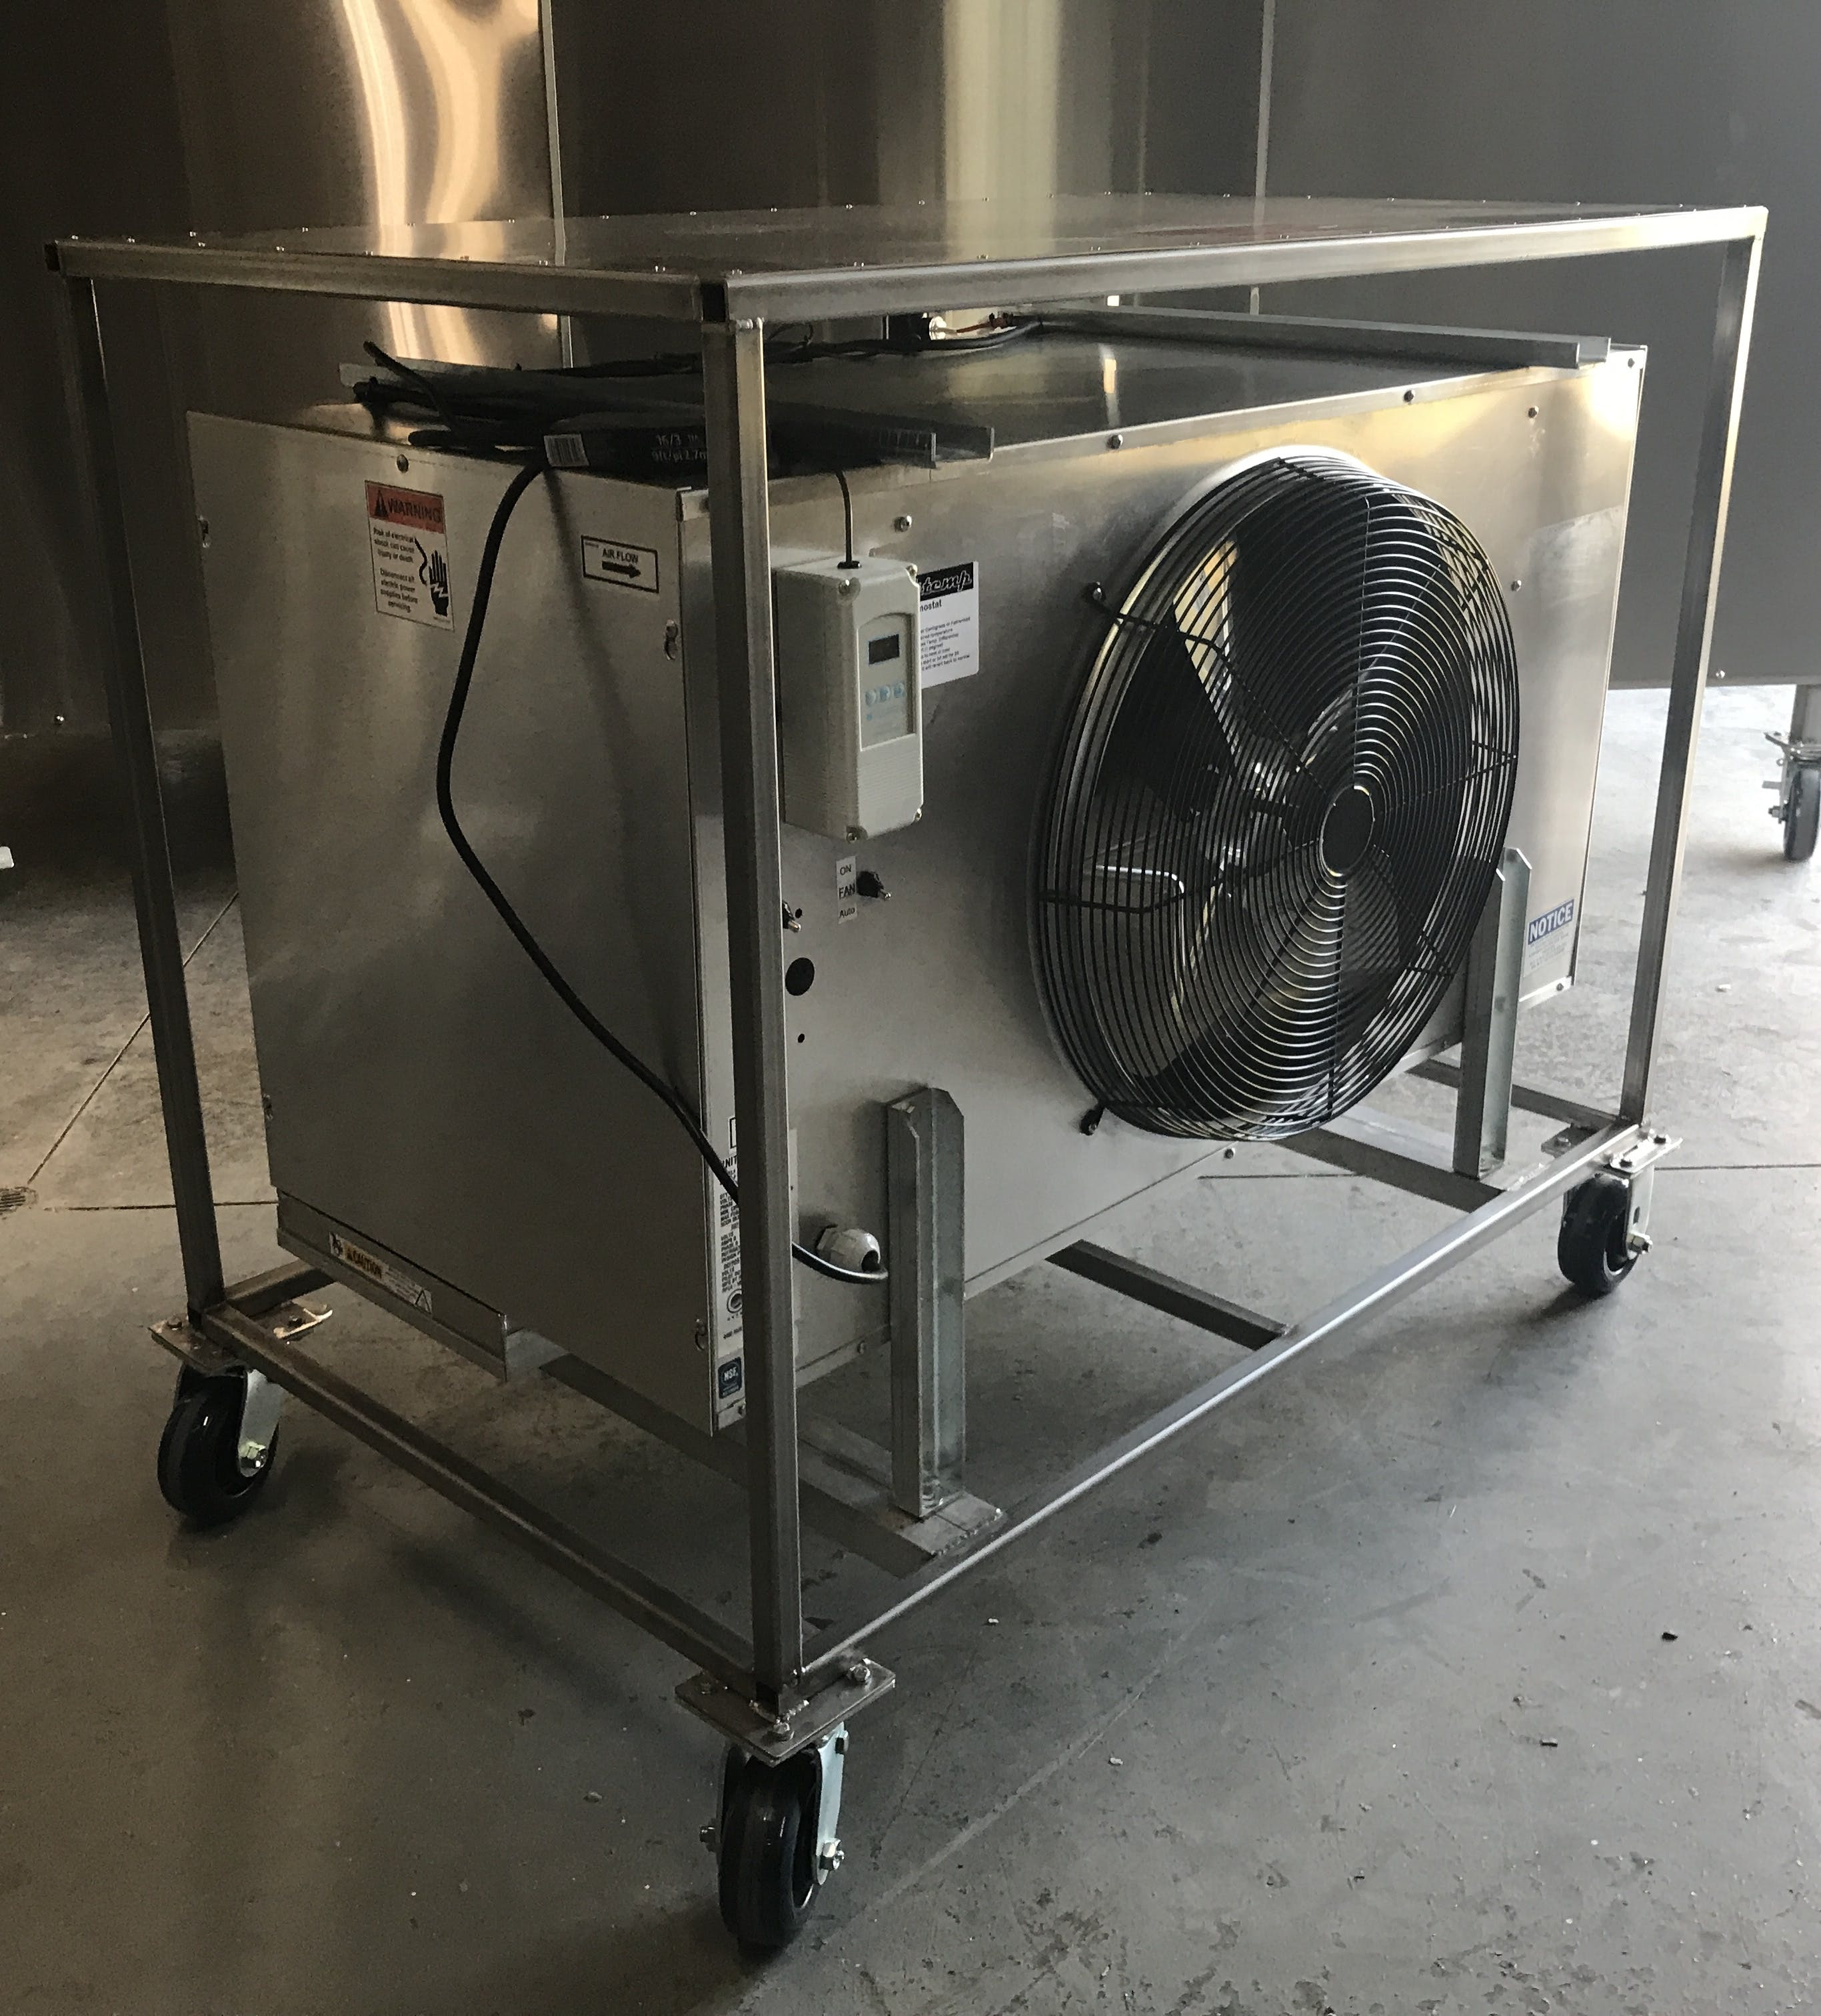 Glycol blower coil for heating or cooling spaces with your glycol system Glycol chiller sold by Tanktemp Control